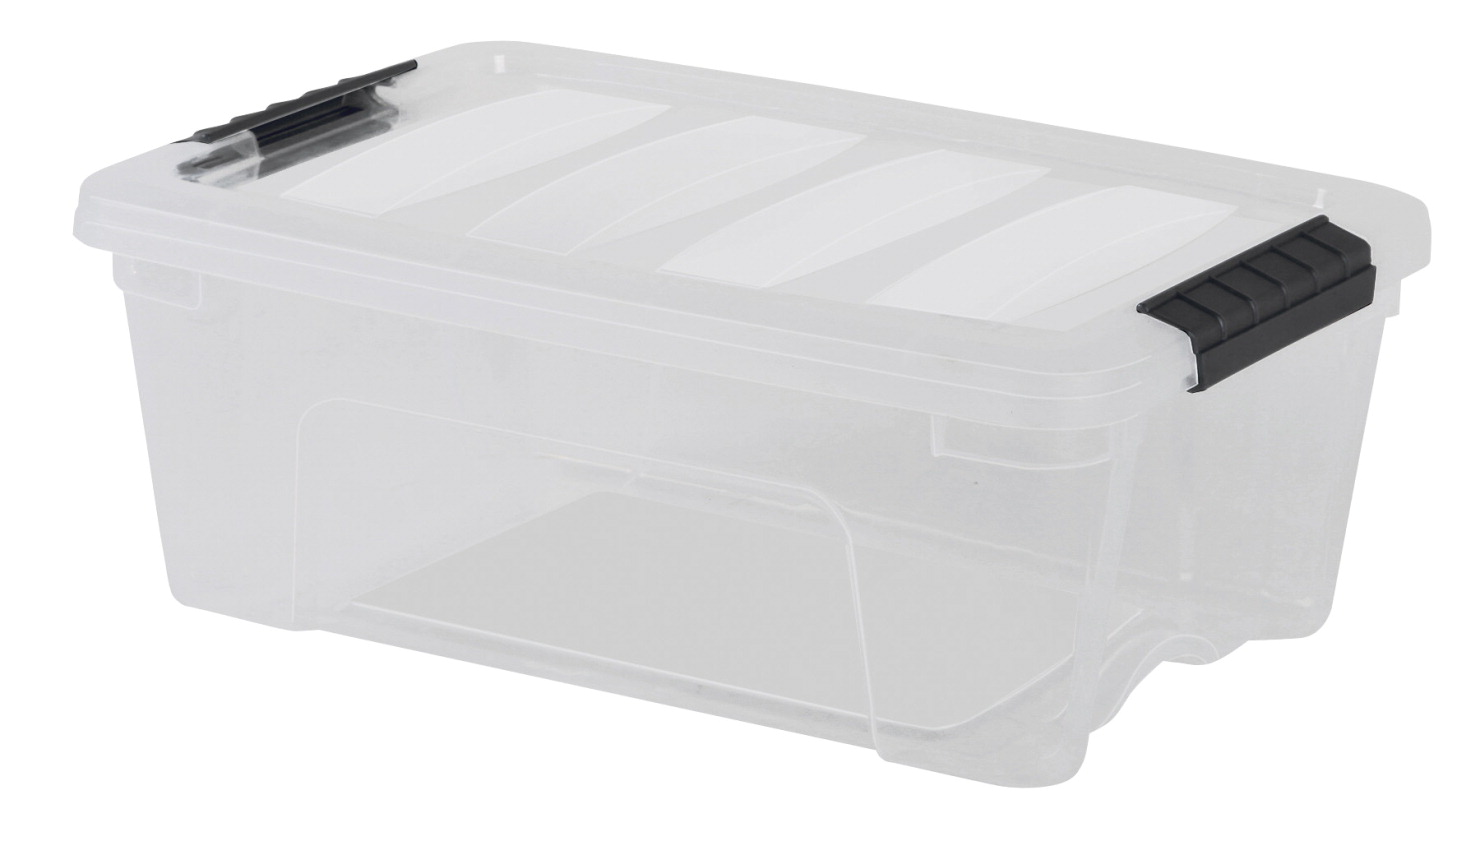 IRIS TB-56 Pull Stack Storage Box with Handle, 22 x 16-1/2 x 6-1/2 Inches, 26.9 Quarts, Clear/Black